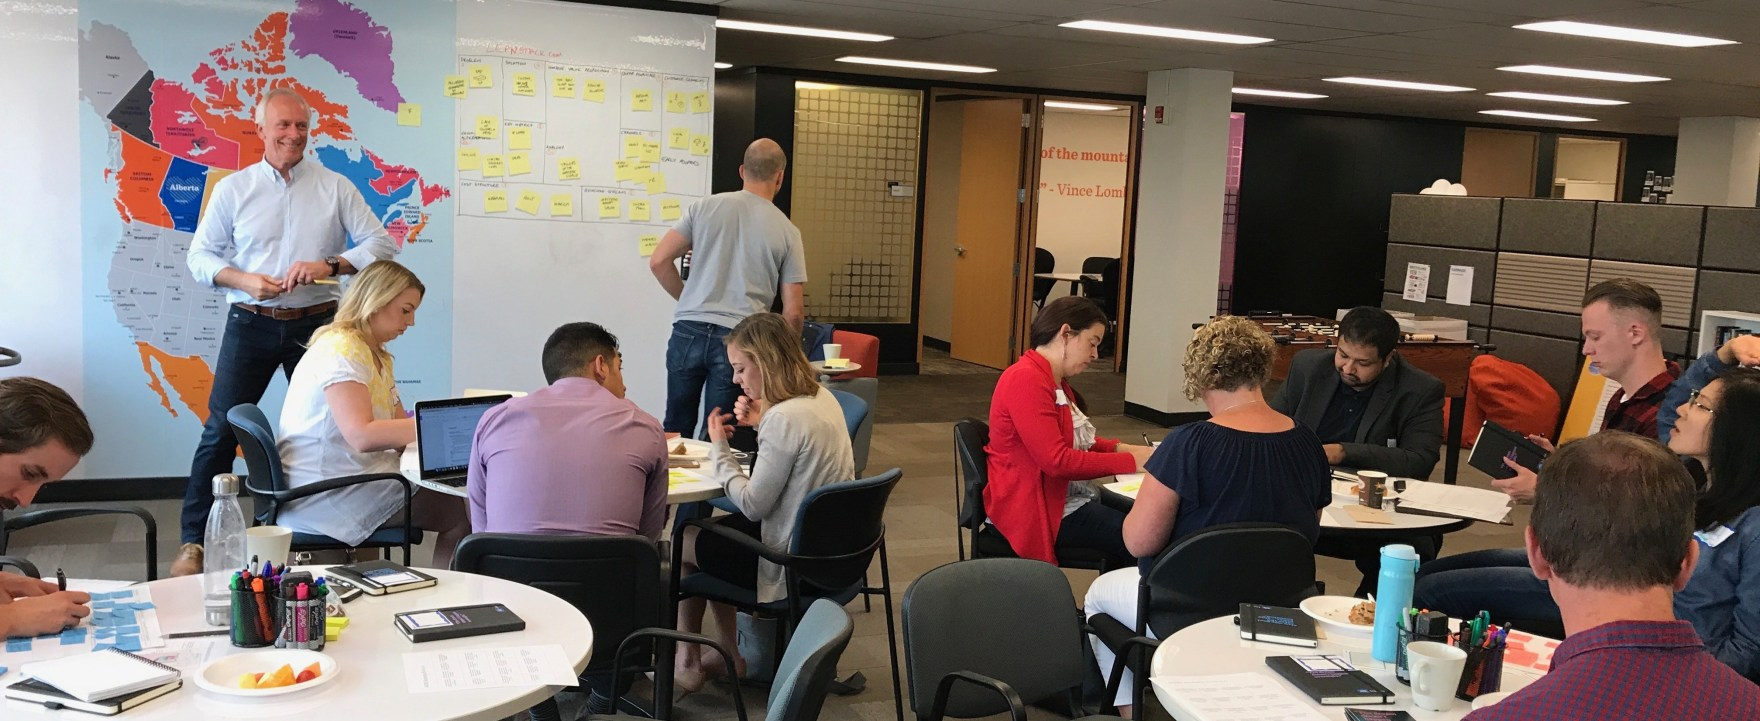 September 2017. I'm running a Lean Canvas workshop for a startup bootcamp hosted by one of the local banks. I love the startup scene – there's an incredible amount of energy and people get stuff done fast.